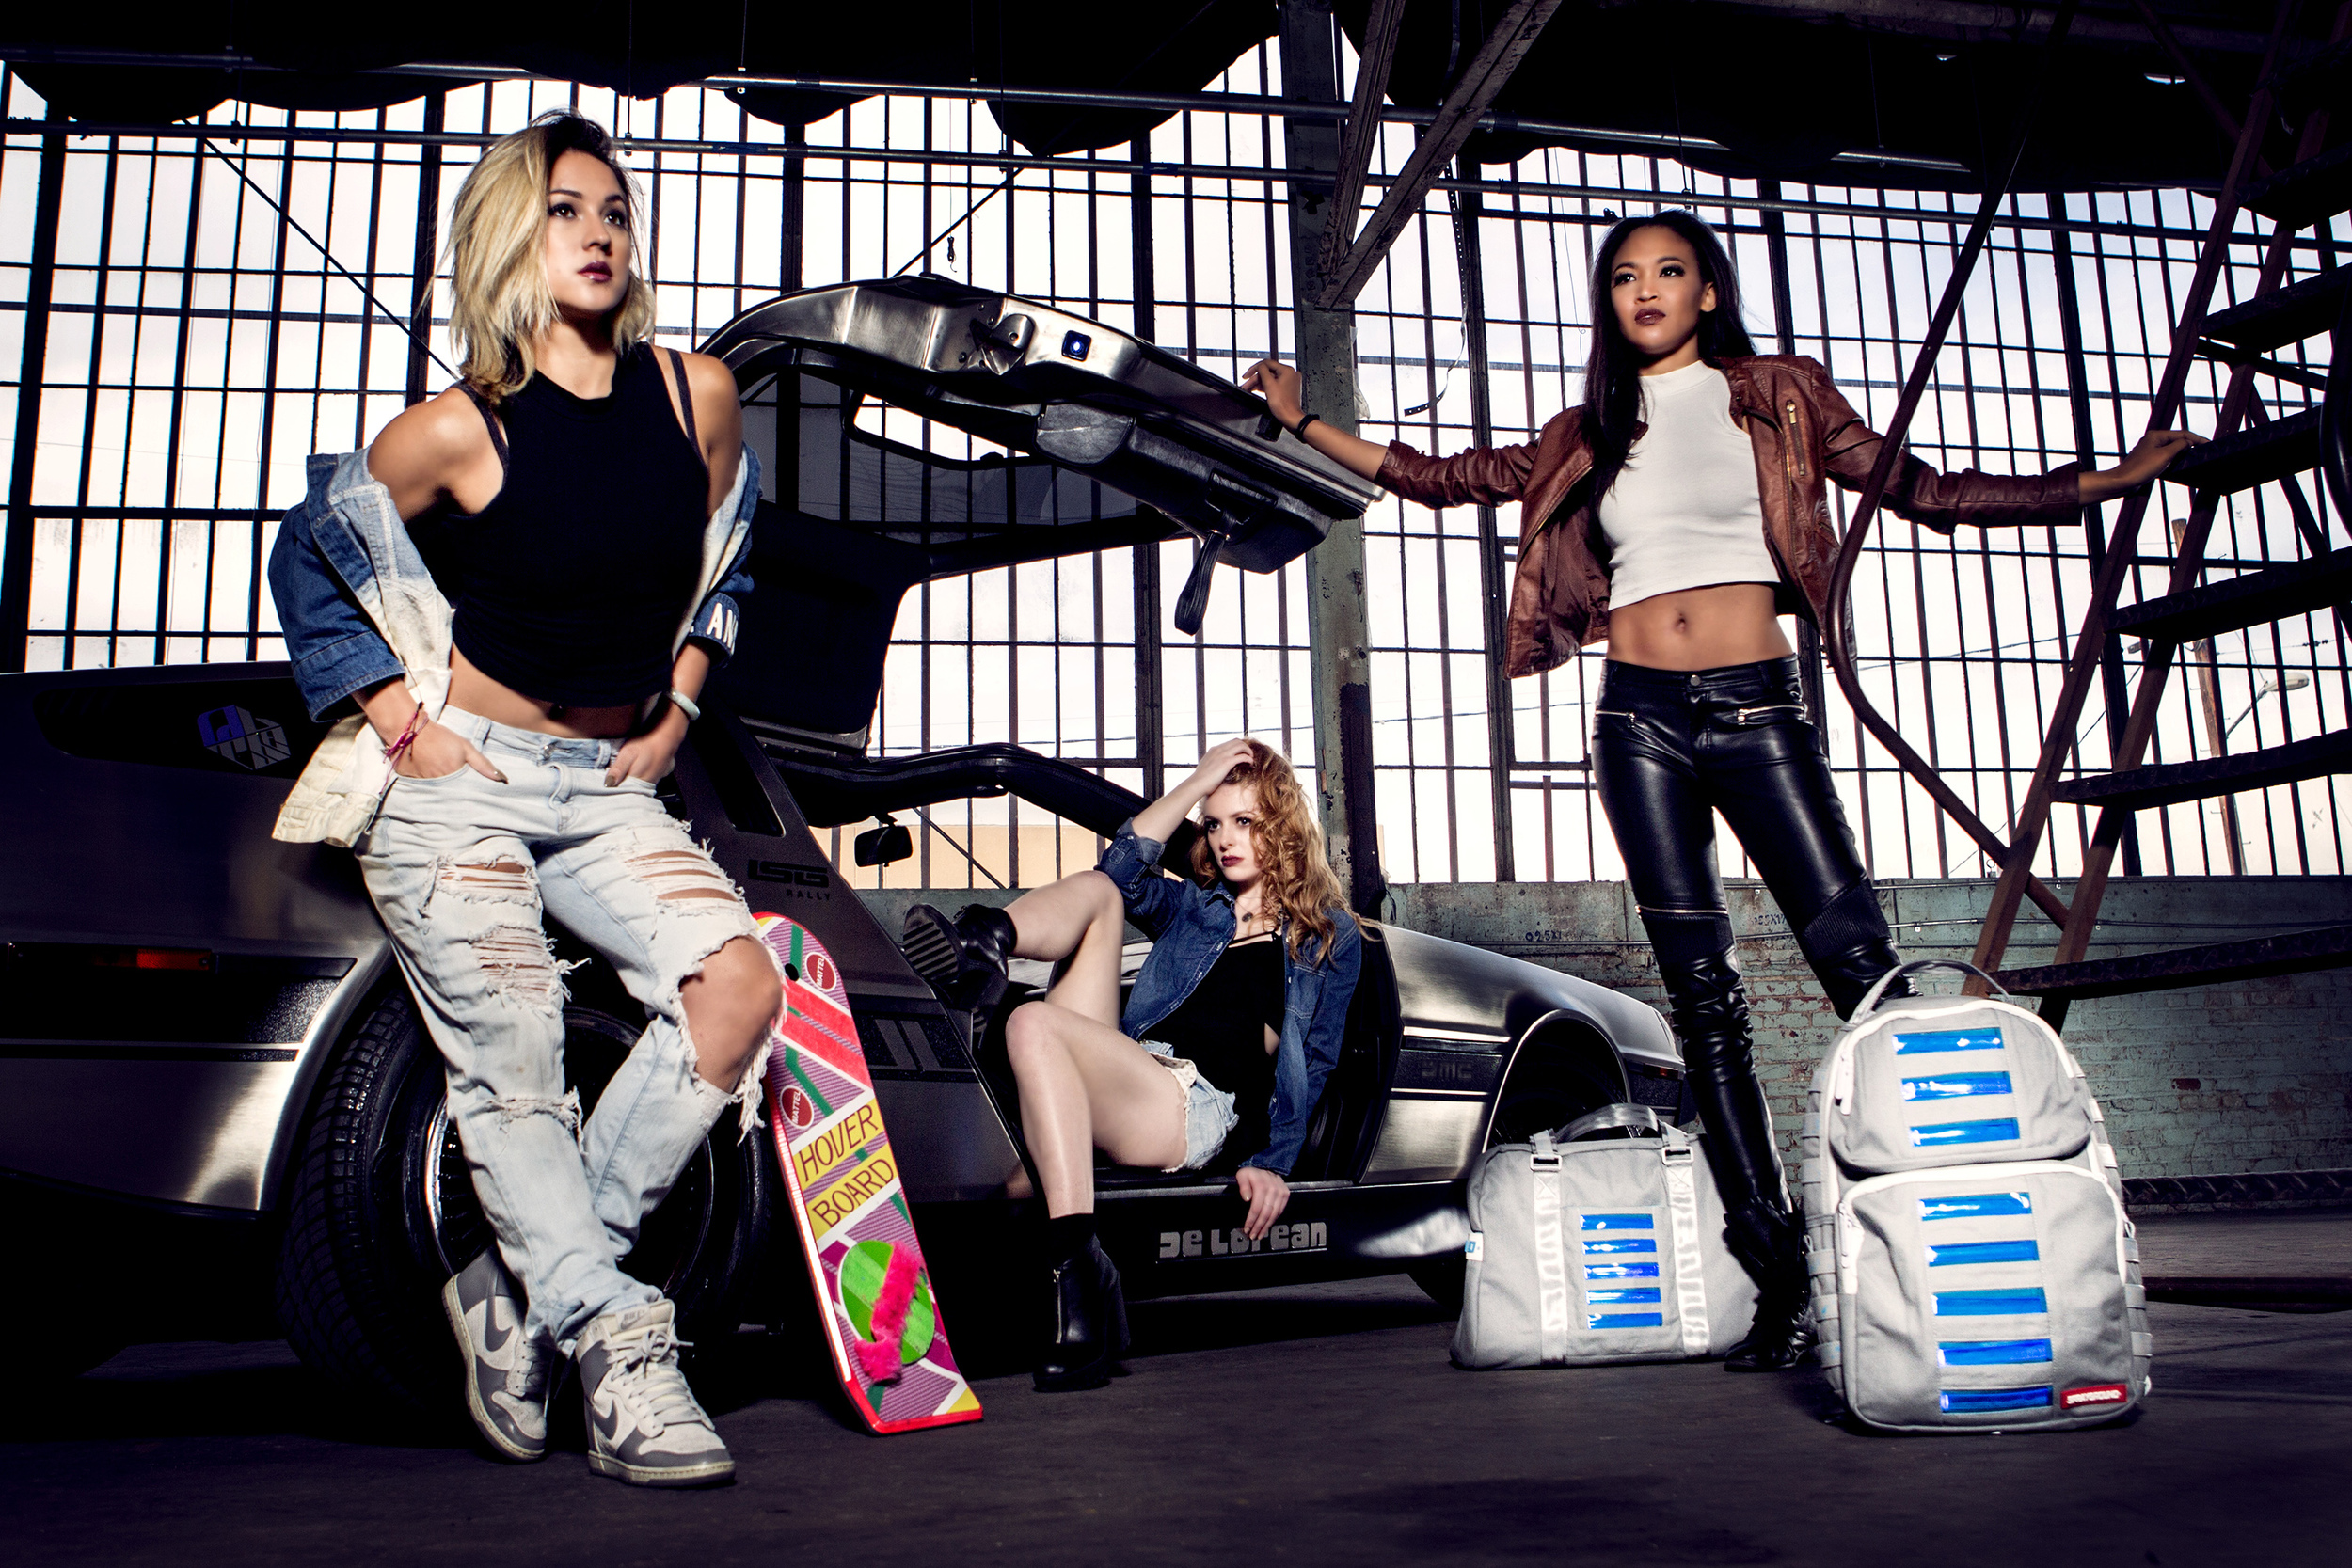 sprayground high snobiety shay maria justfeng photography editorial street dreams back to the future